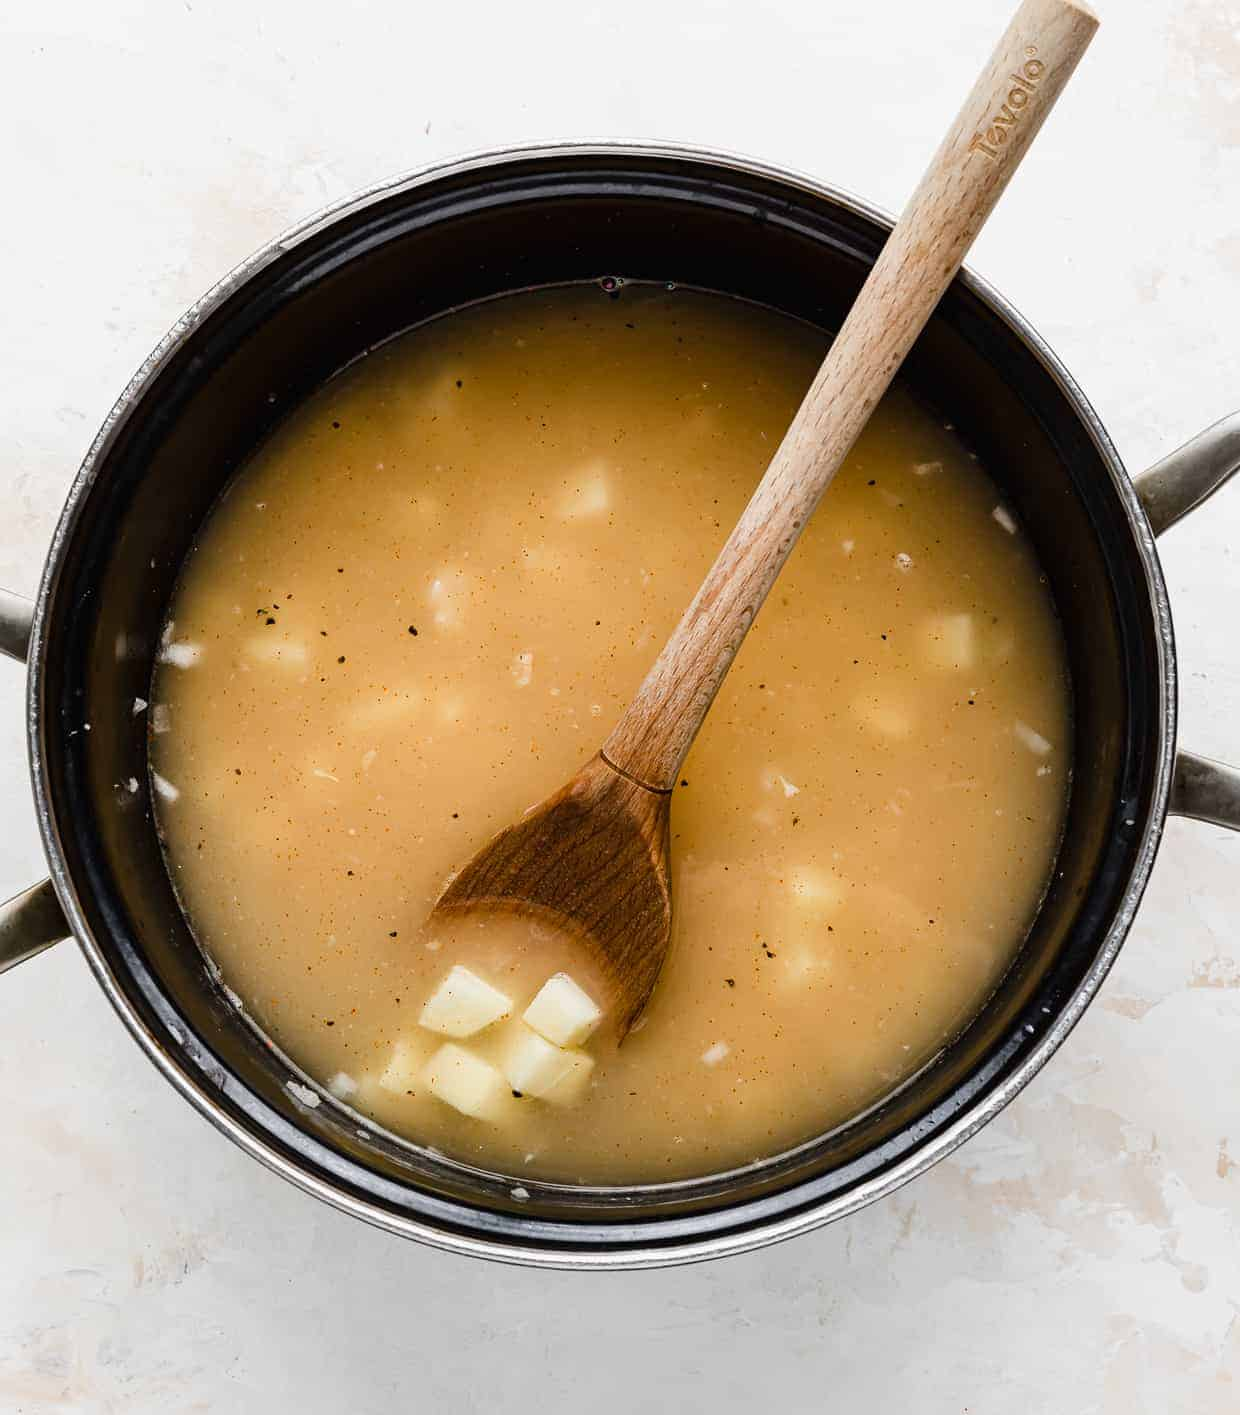 A pot with chicken broth and diced potatoes in it.